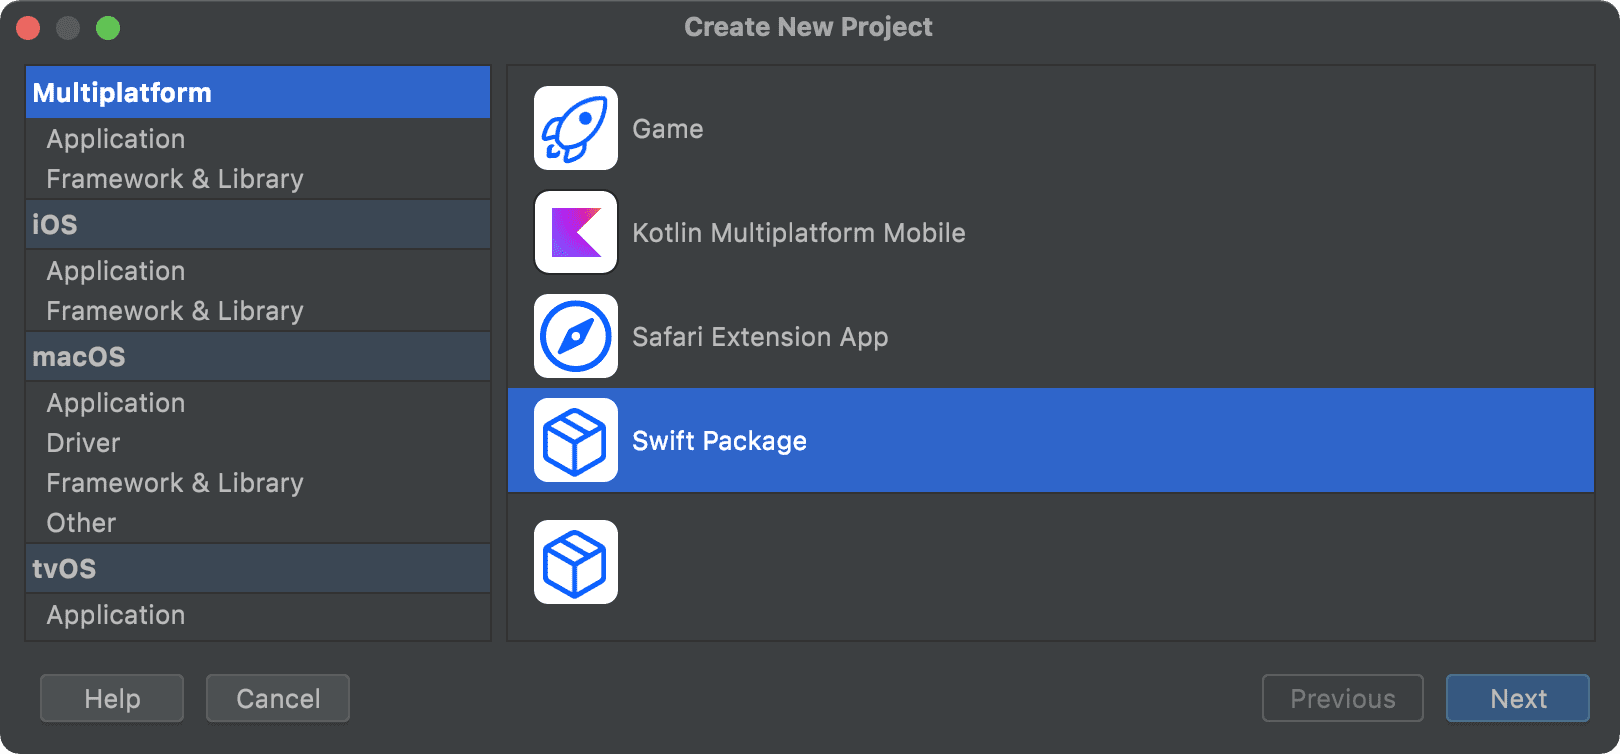 Swift Package template